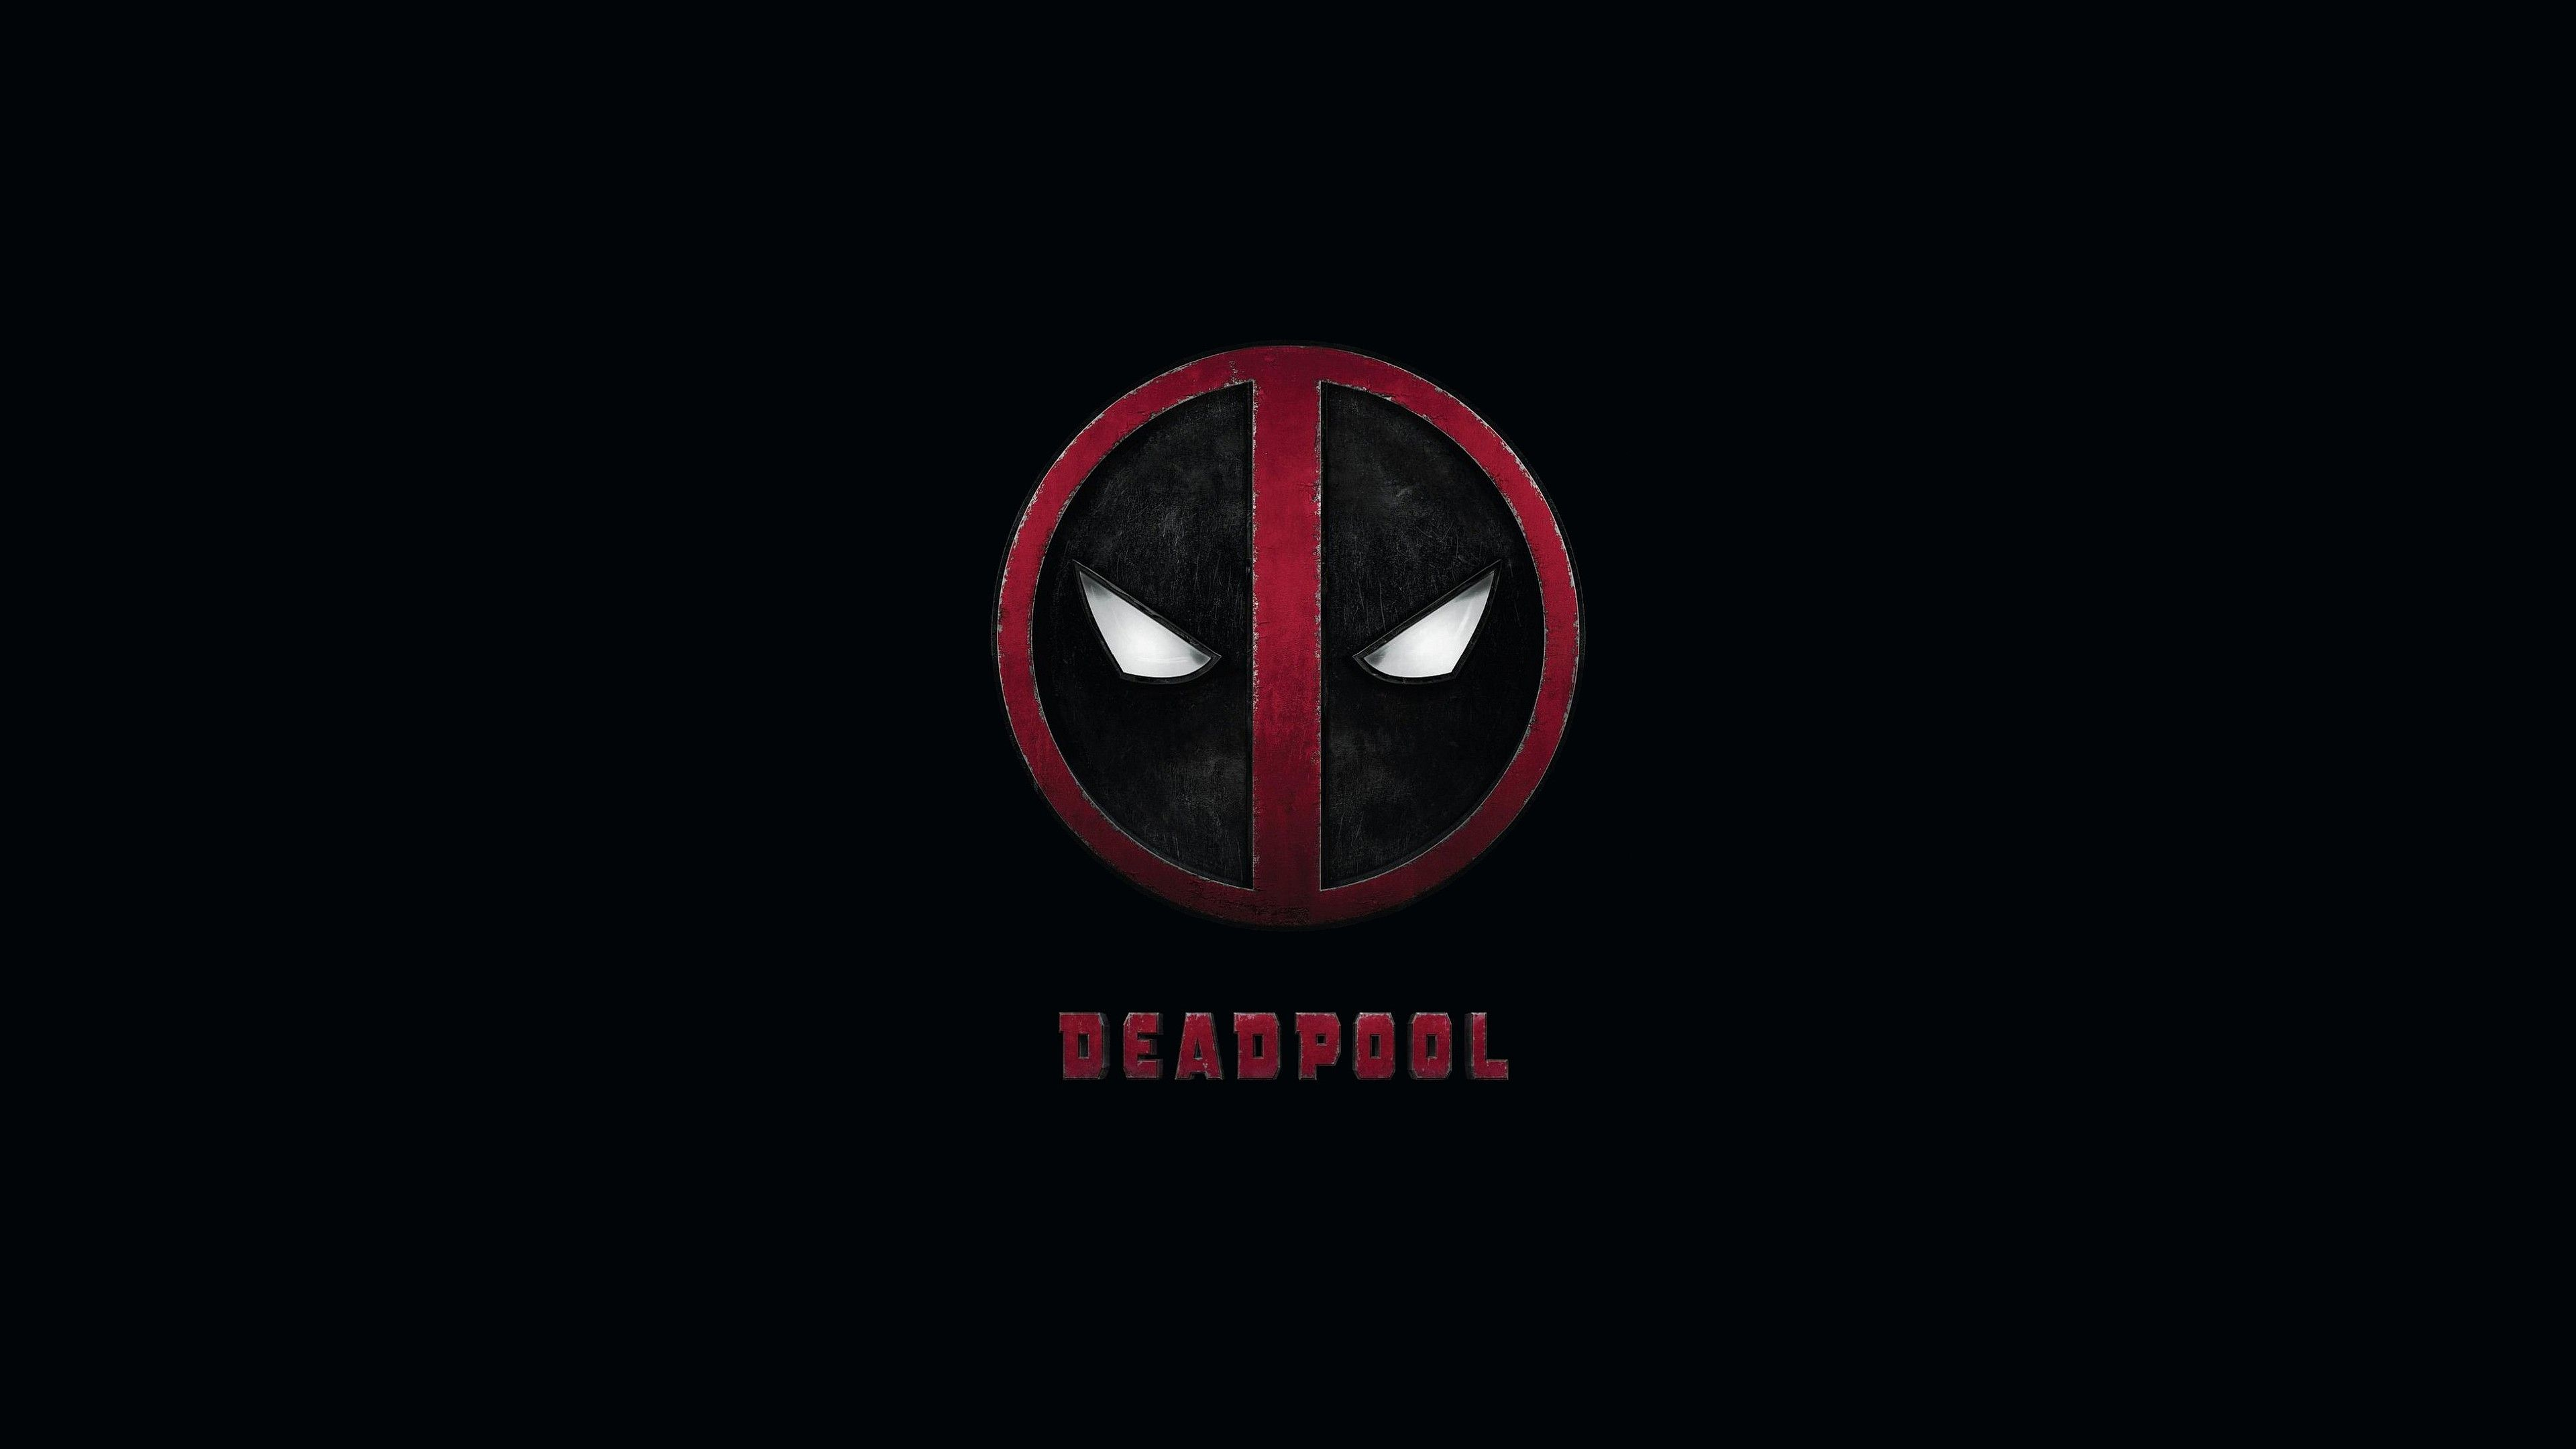 Pin By Adrian David On Imagenes Hd Deadpool Wallpaper Deadpool Logo Wallpaper Deadpool Logo